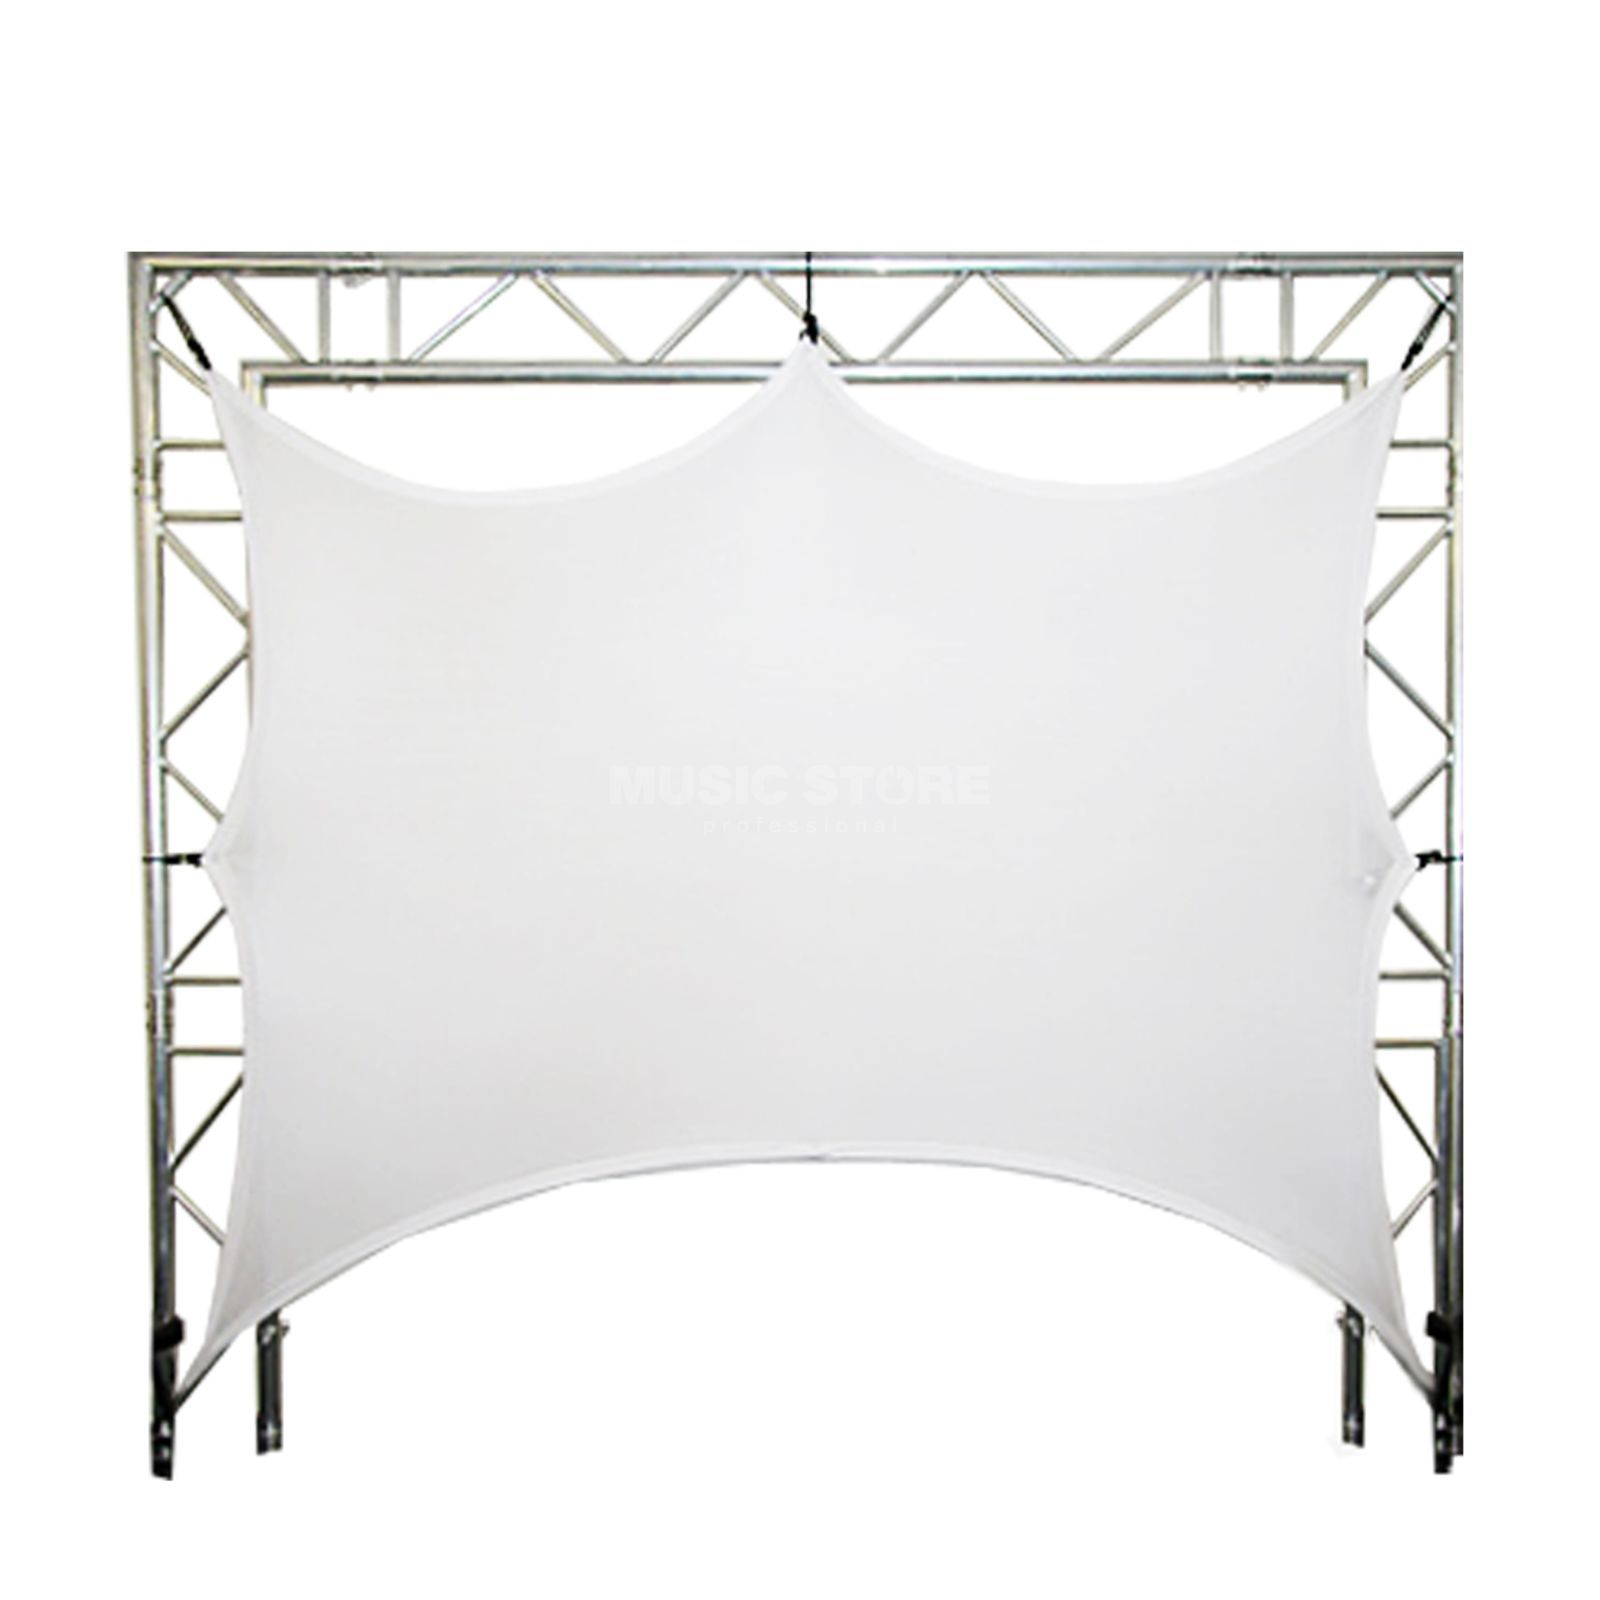 DURATRUSS Truss Screen 0,5 x 2m Produktbild